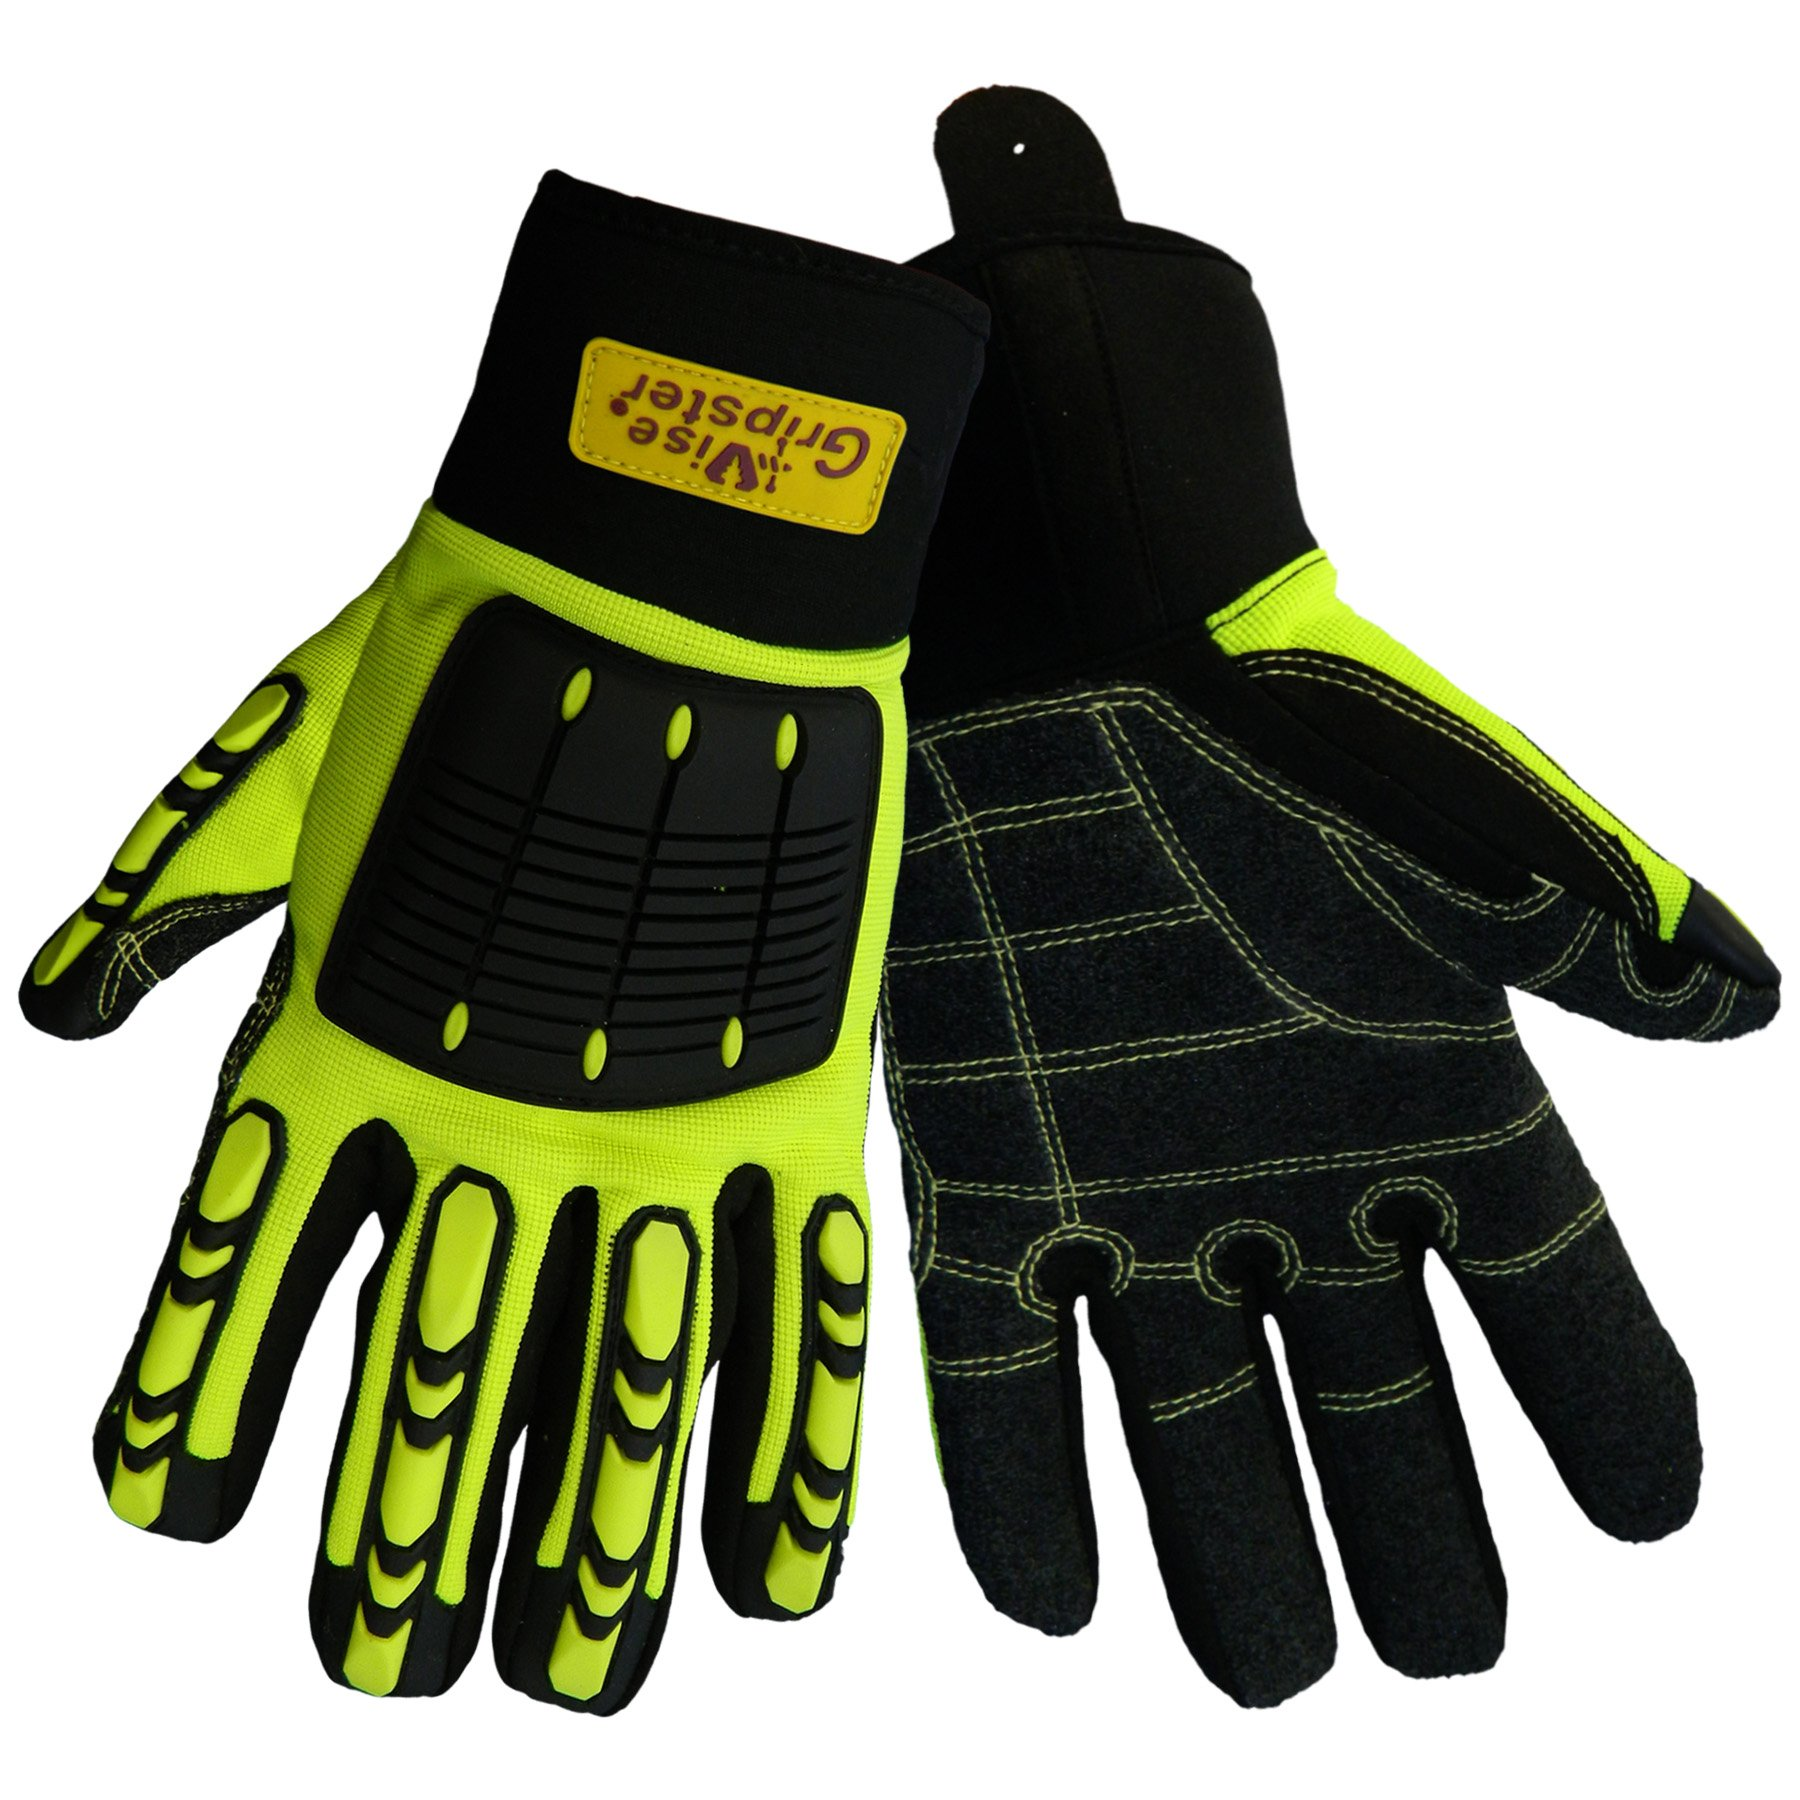 Global Glove SG9966 Vise Gripster Roughneck Glove with TPR Impact Protection, Work, Medium (Case of 48)